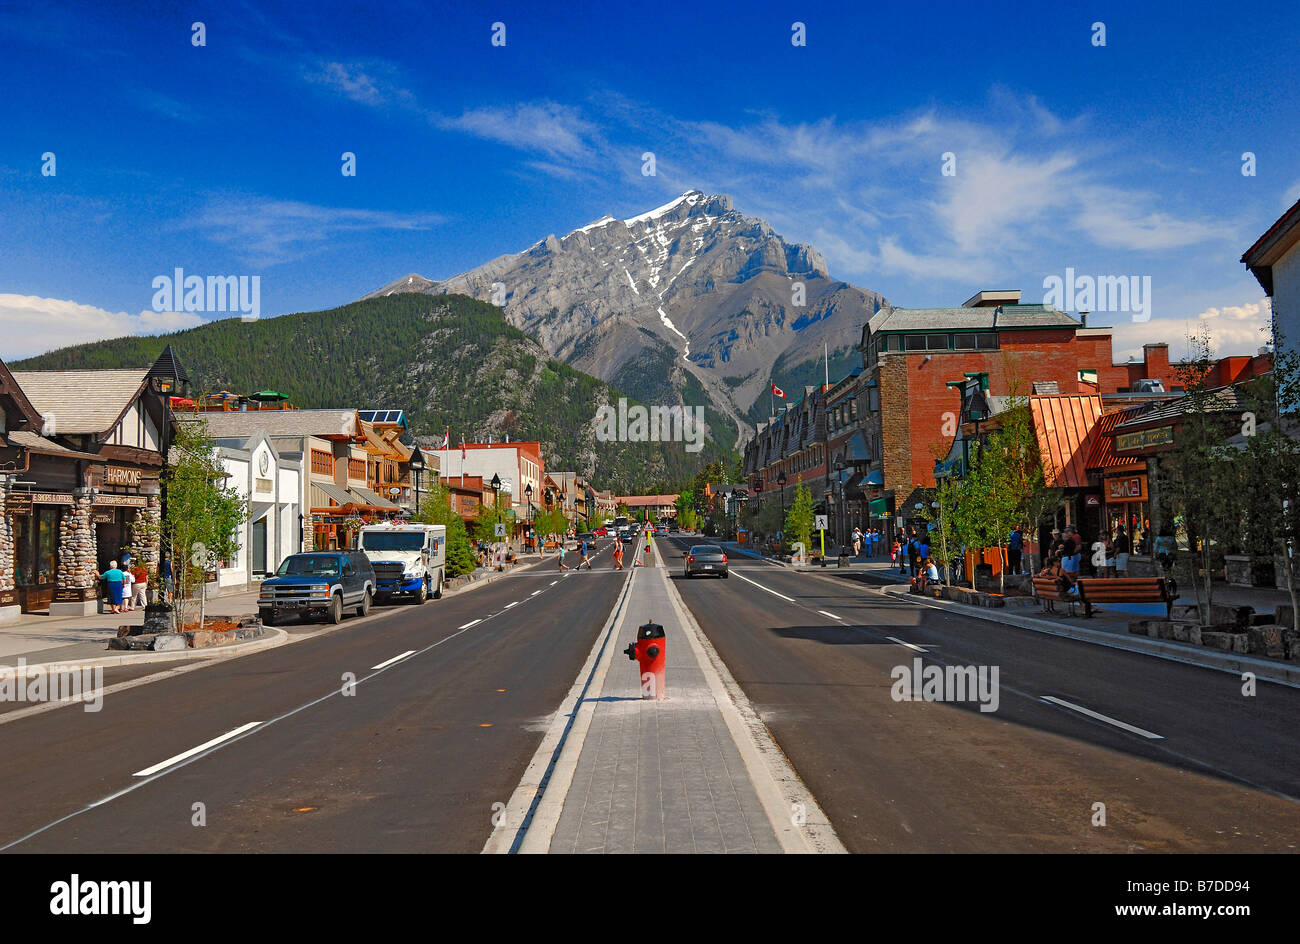 Banff Avenue in the very popular town of Banff, in Alberta, Canada. This the main shopping area. Horizontal format - Stock Image